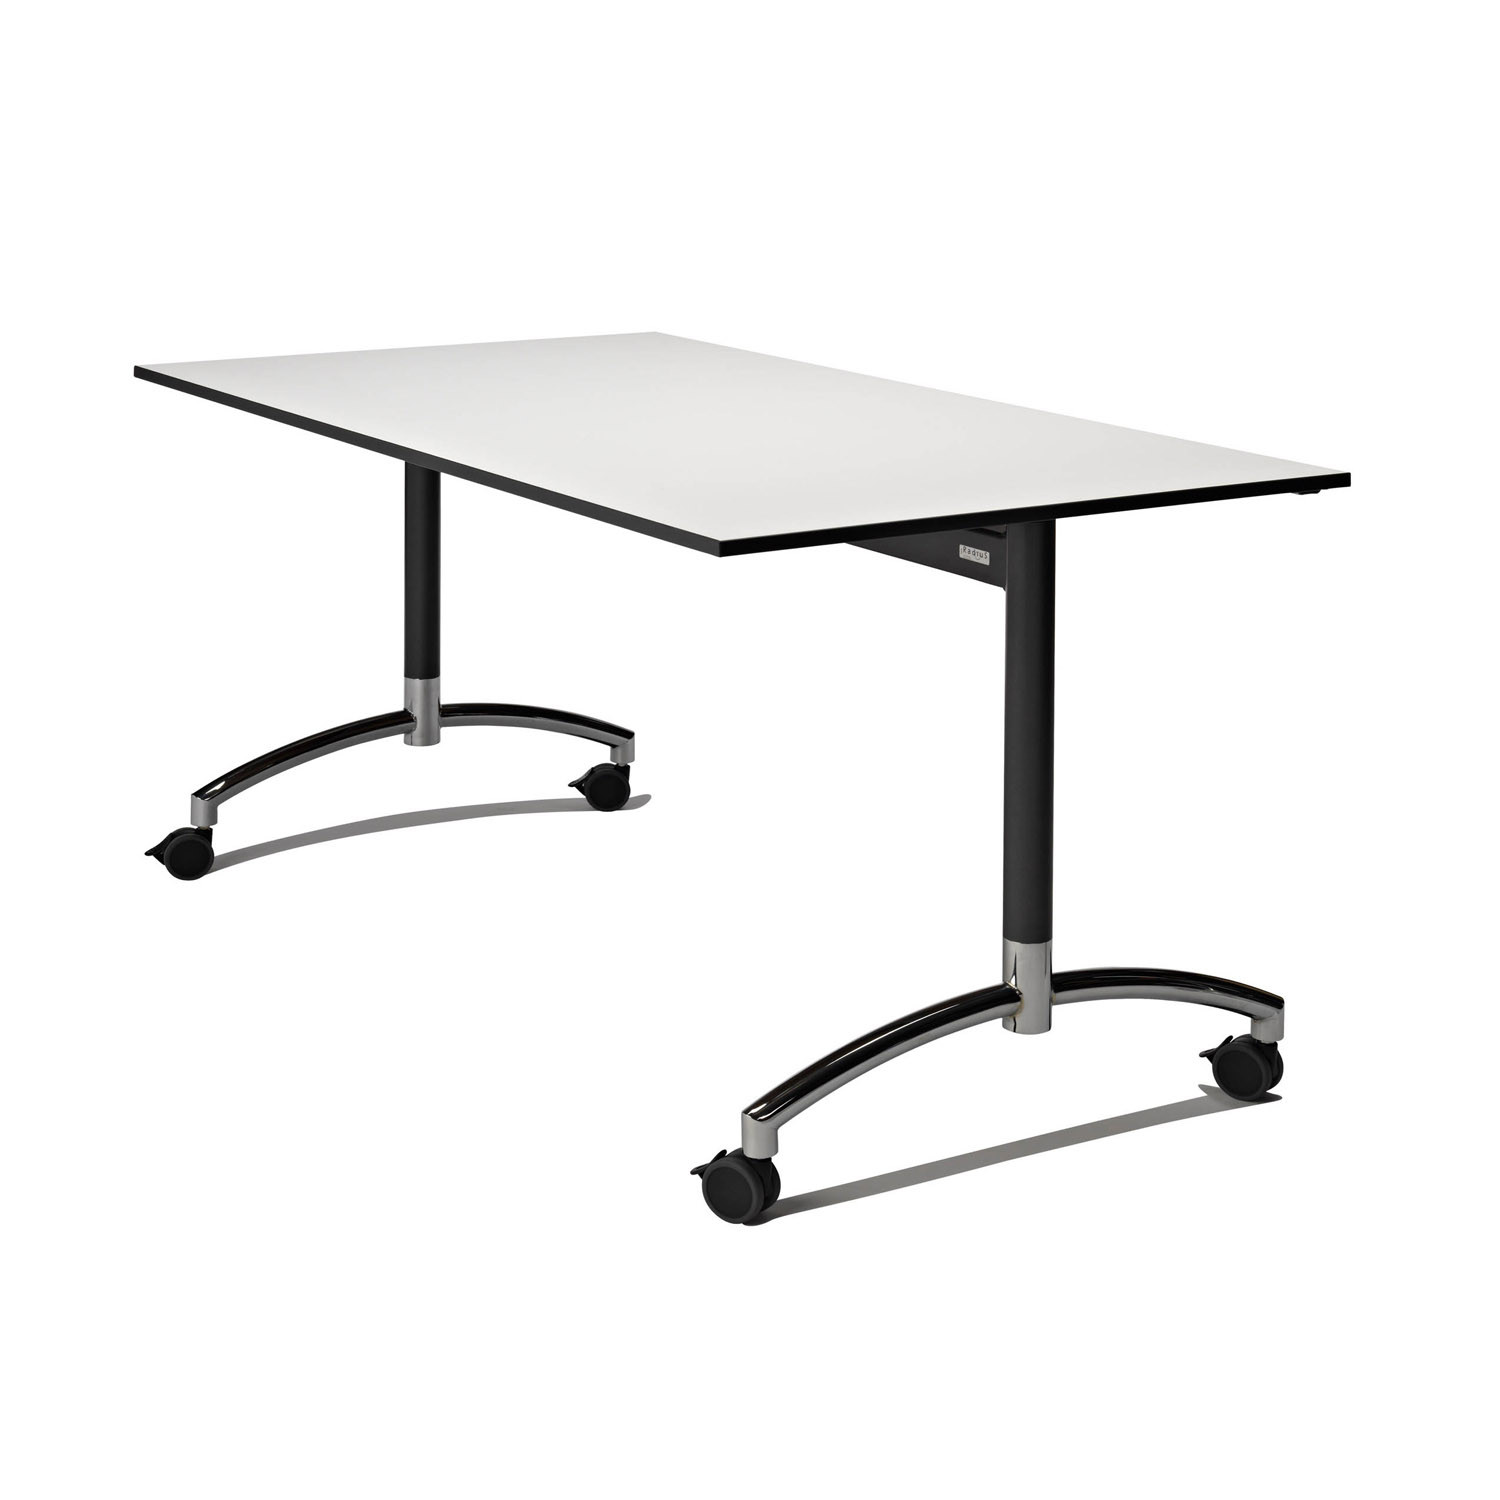 Sharp Folding Table